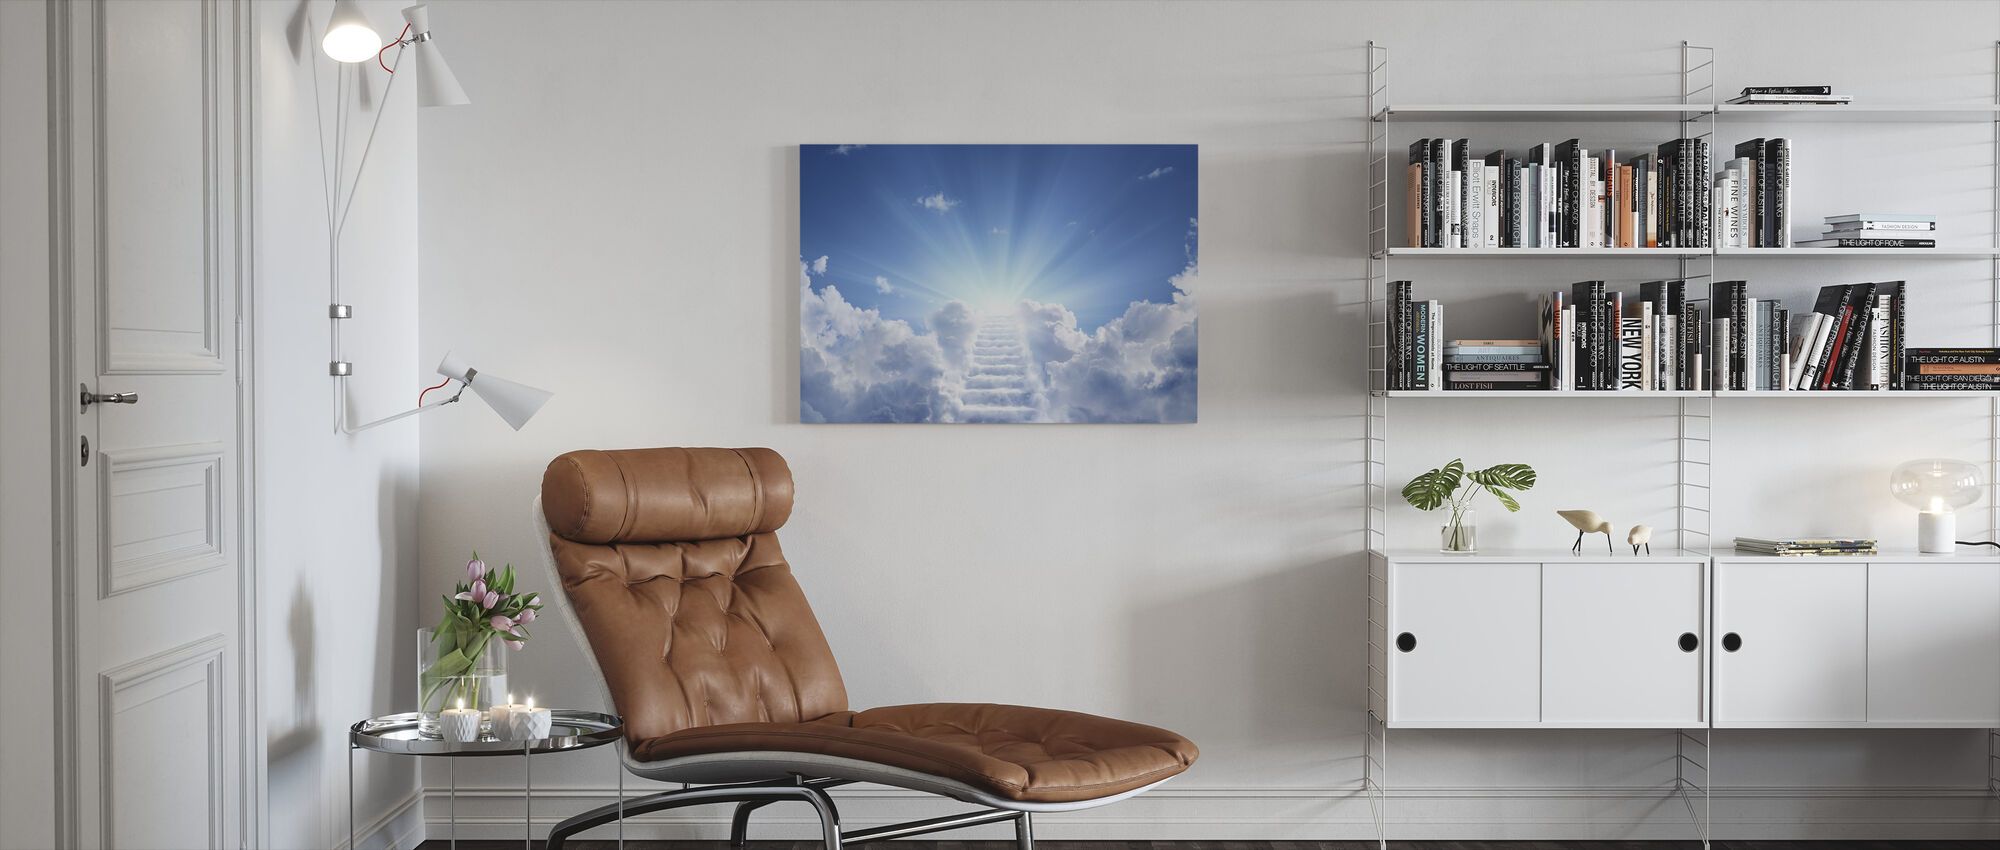 Cloudy Stairs - Canvas print - Living Room